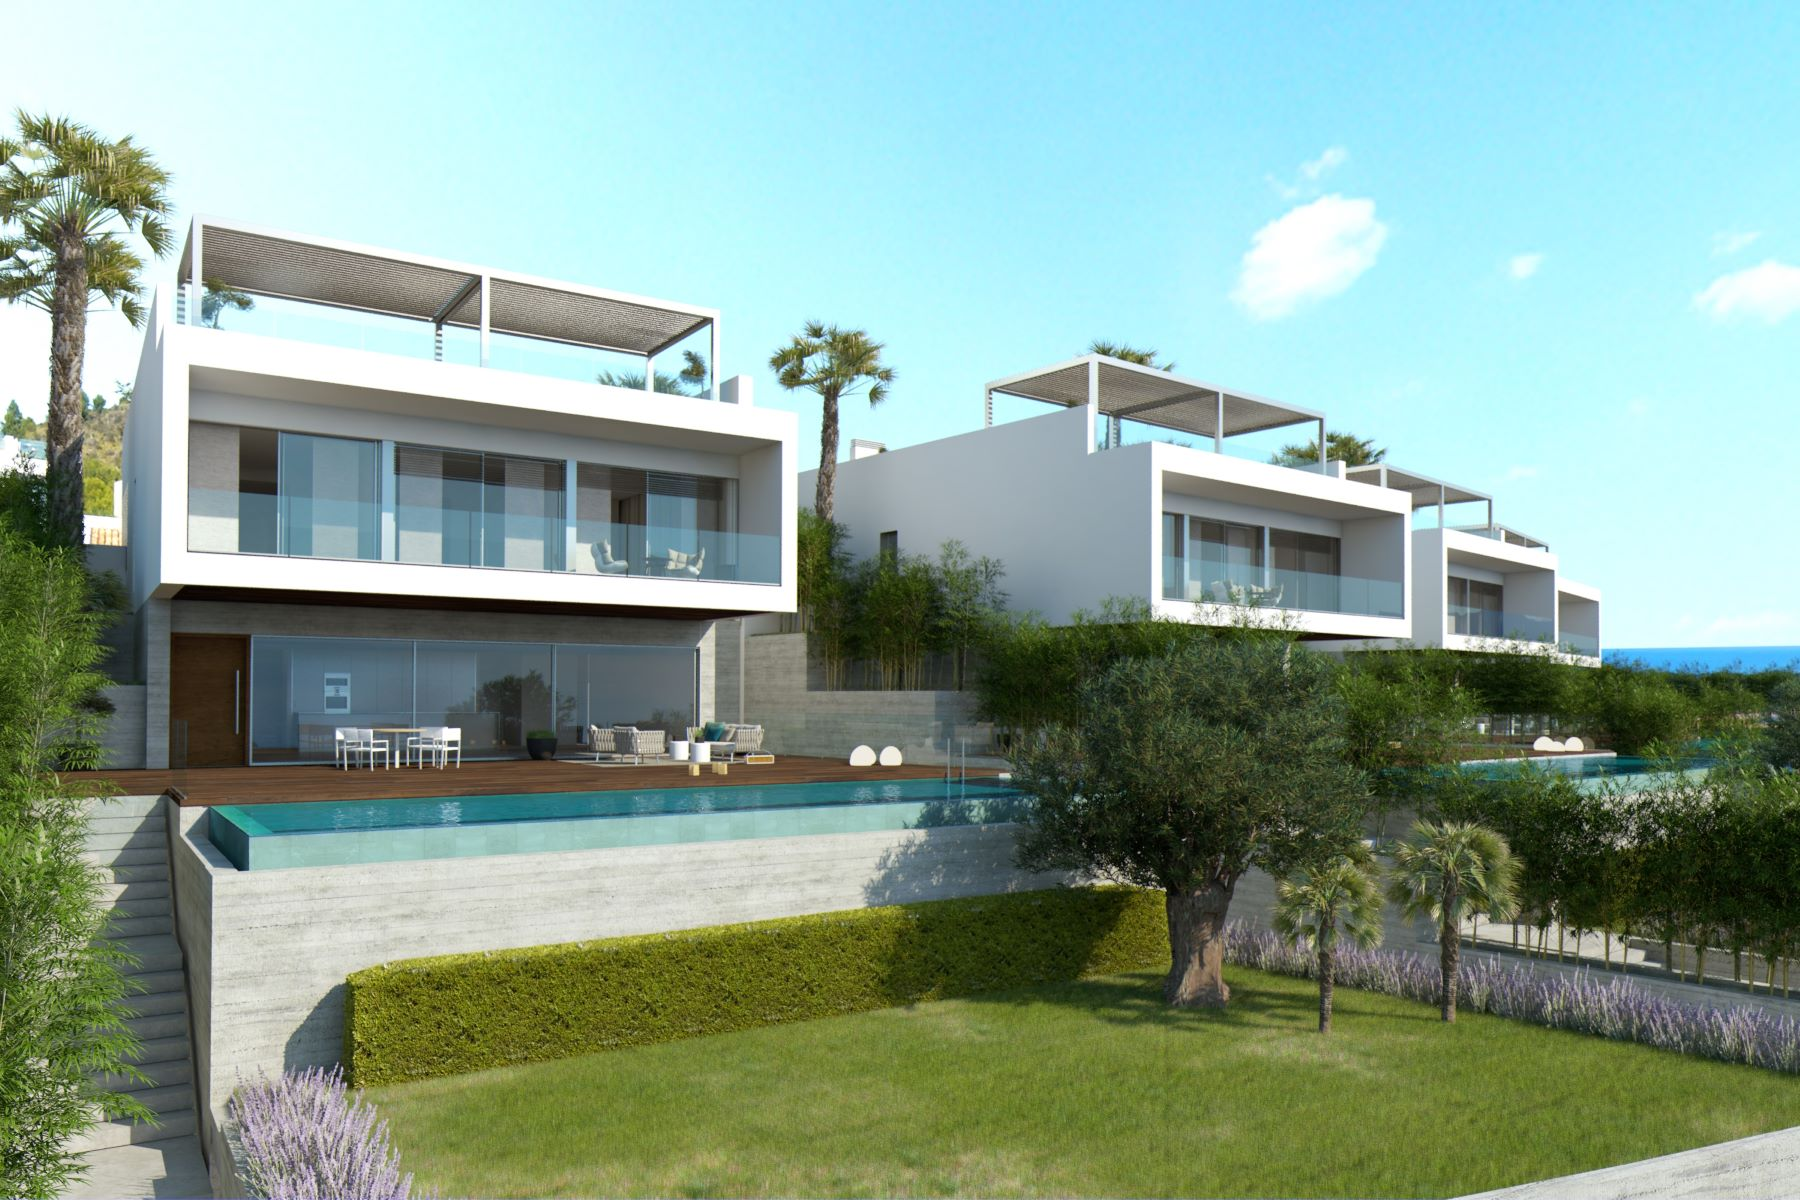 Casa Unifamiliar por un Venta en Newly built luxury villas with sea views, Alcanada Alcudia, Mallorca, 07400 España